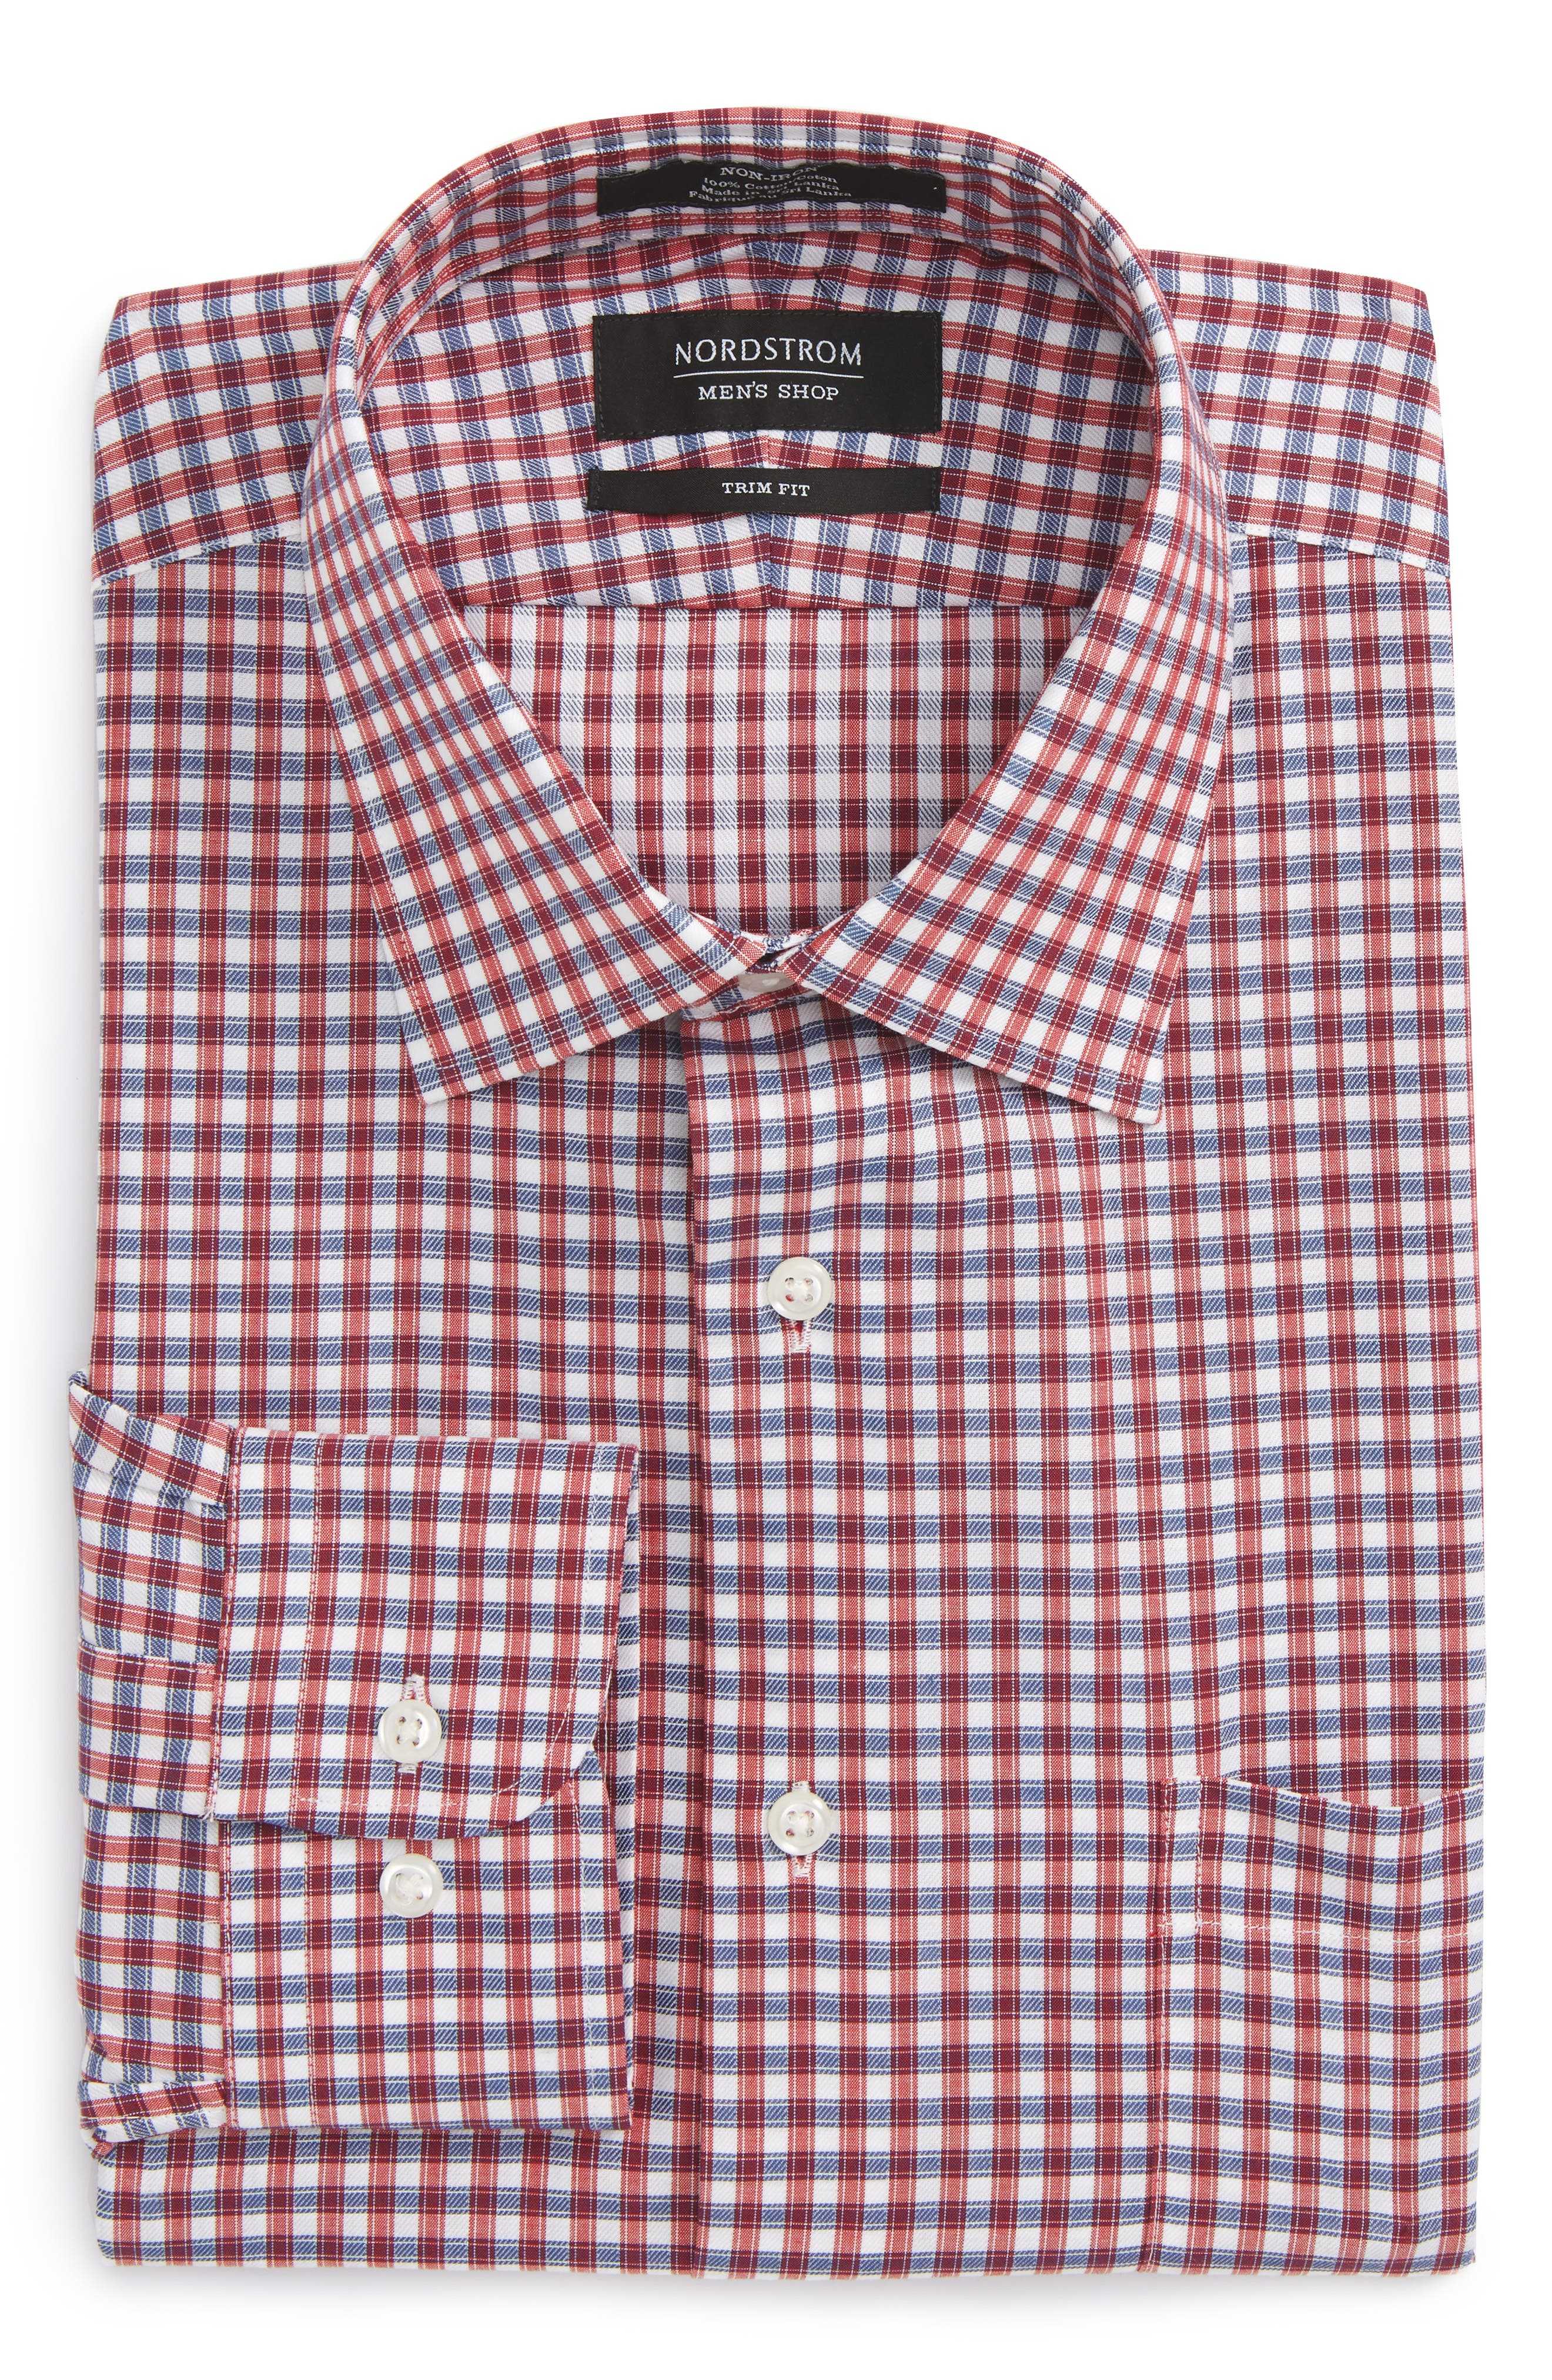 Alternate Image 1 Selected - Nordstrom Men's Shop Trim Fit Non-Iron Check Dress Shirt